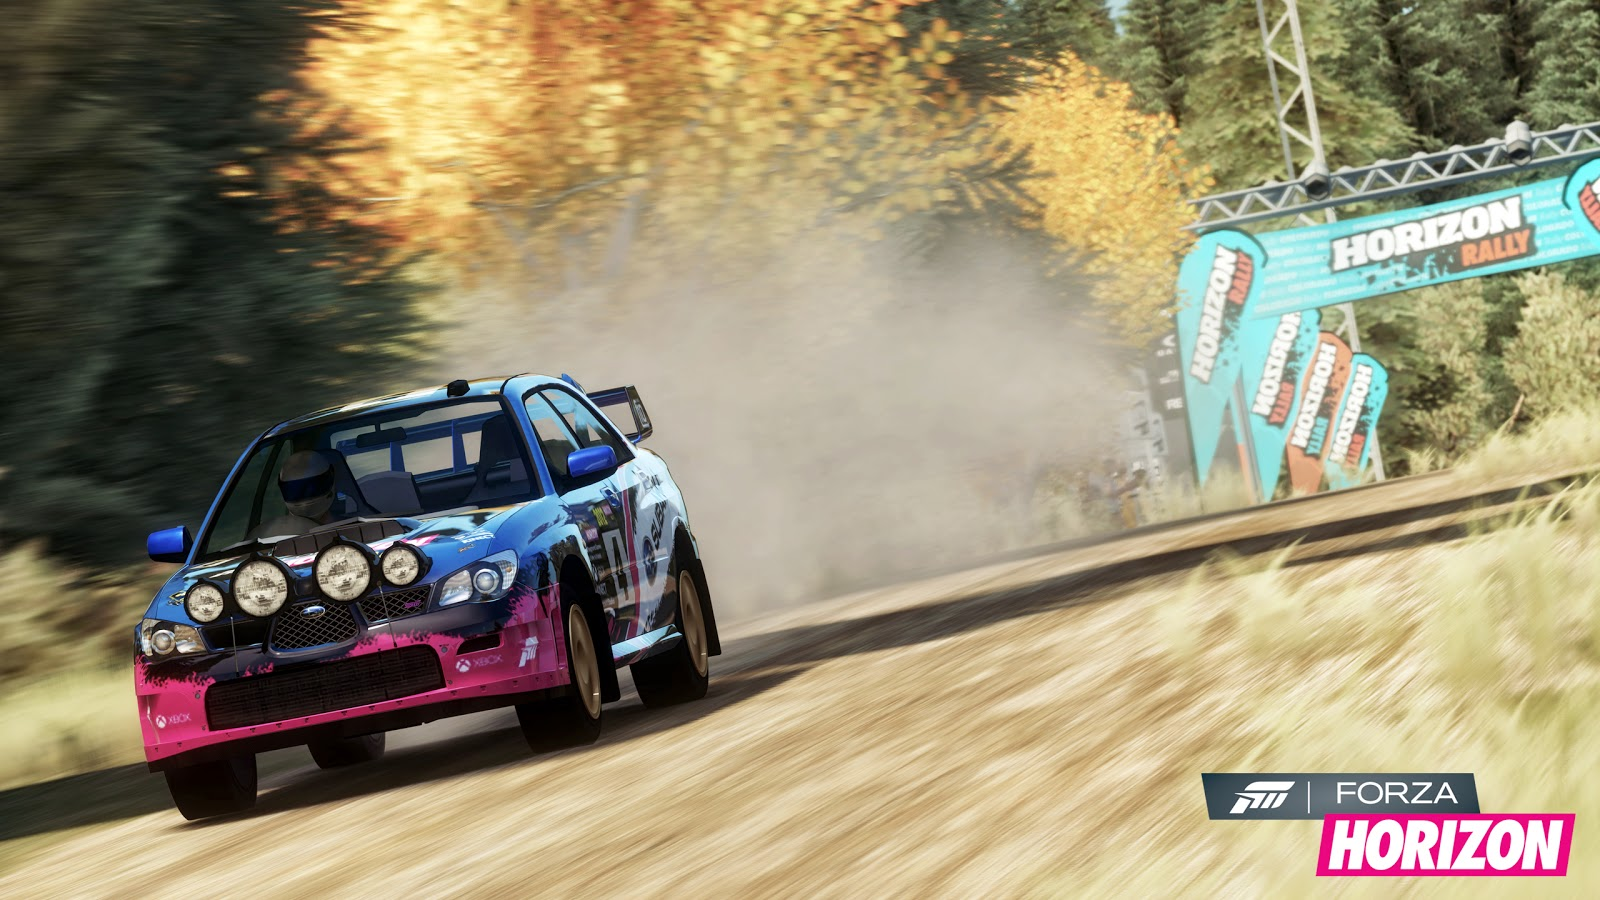 Forza Horizon HD & Widescreen Wallpaper 0.681272412477524